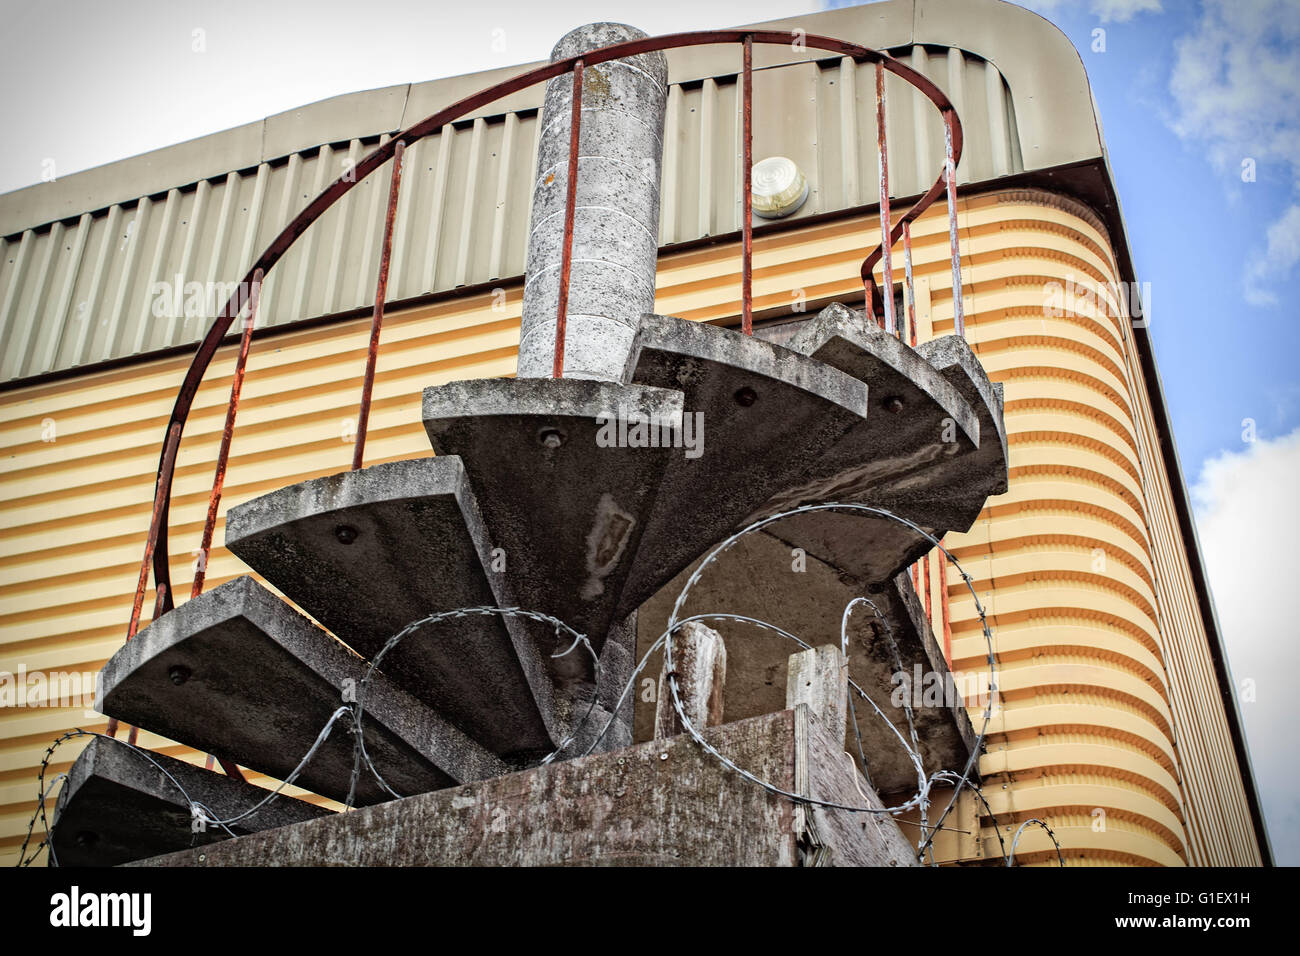 Spiral Staircases With Iron Railing Once Use As A Fire Escape On A Metal  Abadon Warehouse